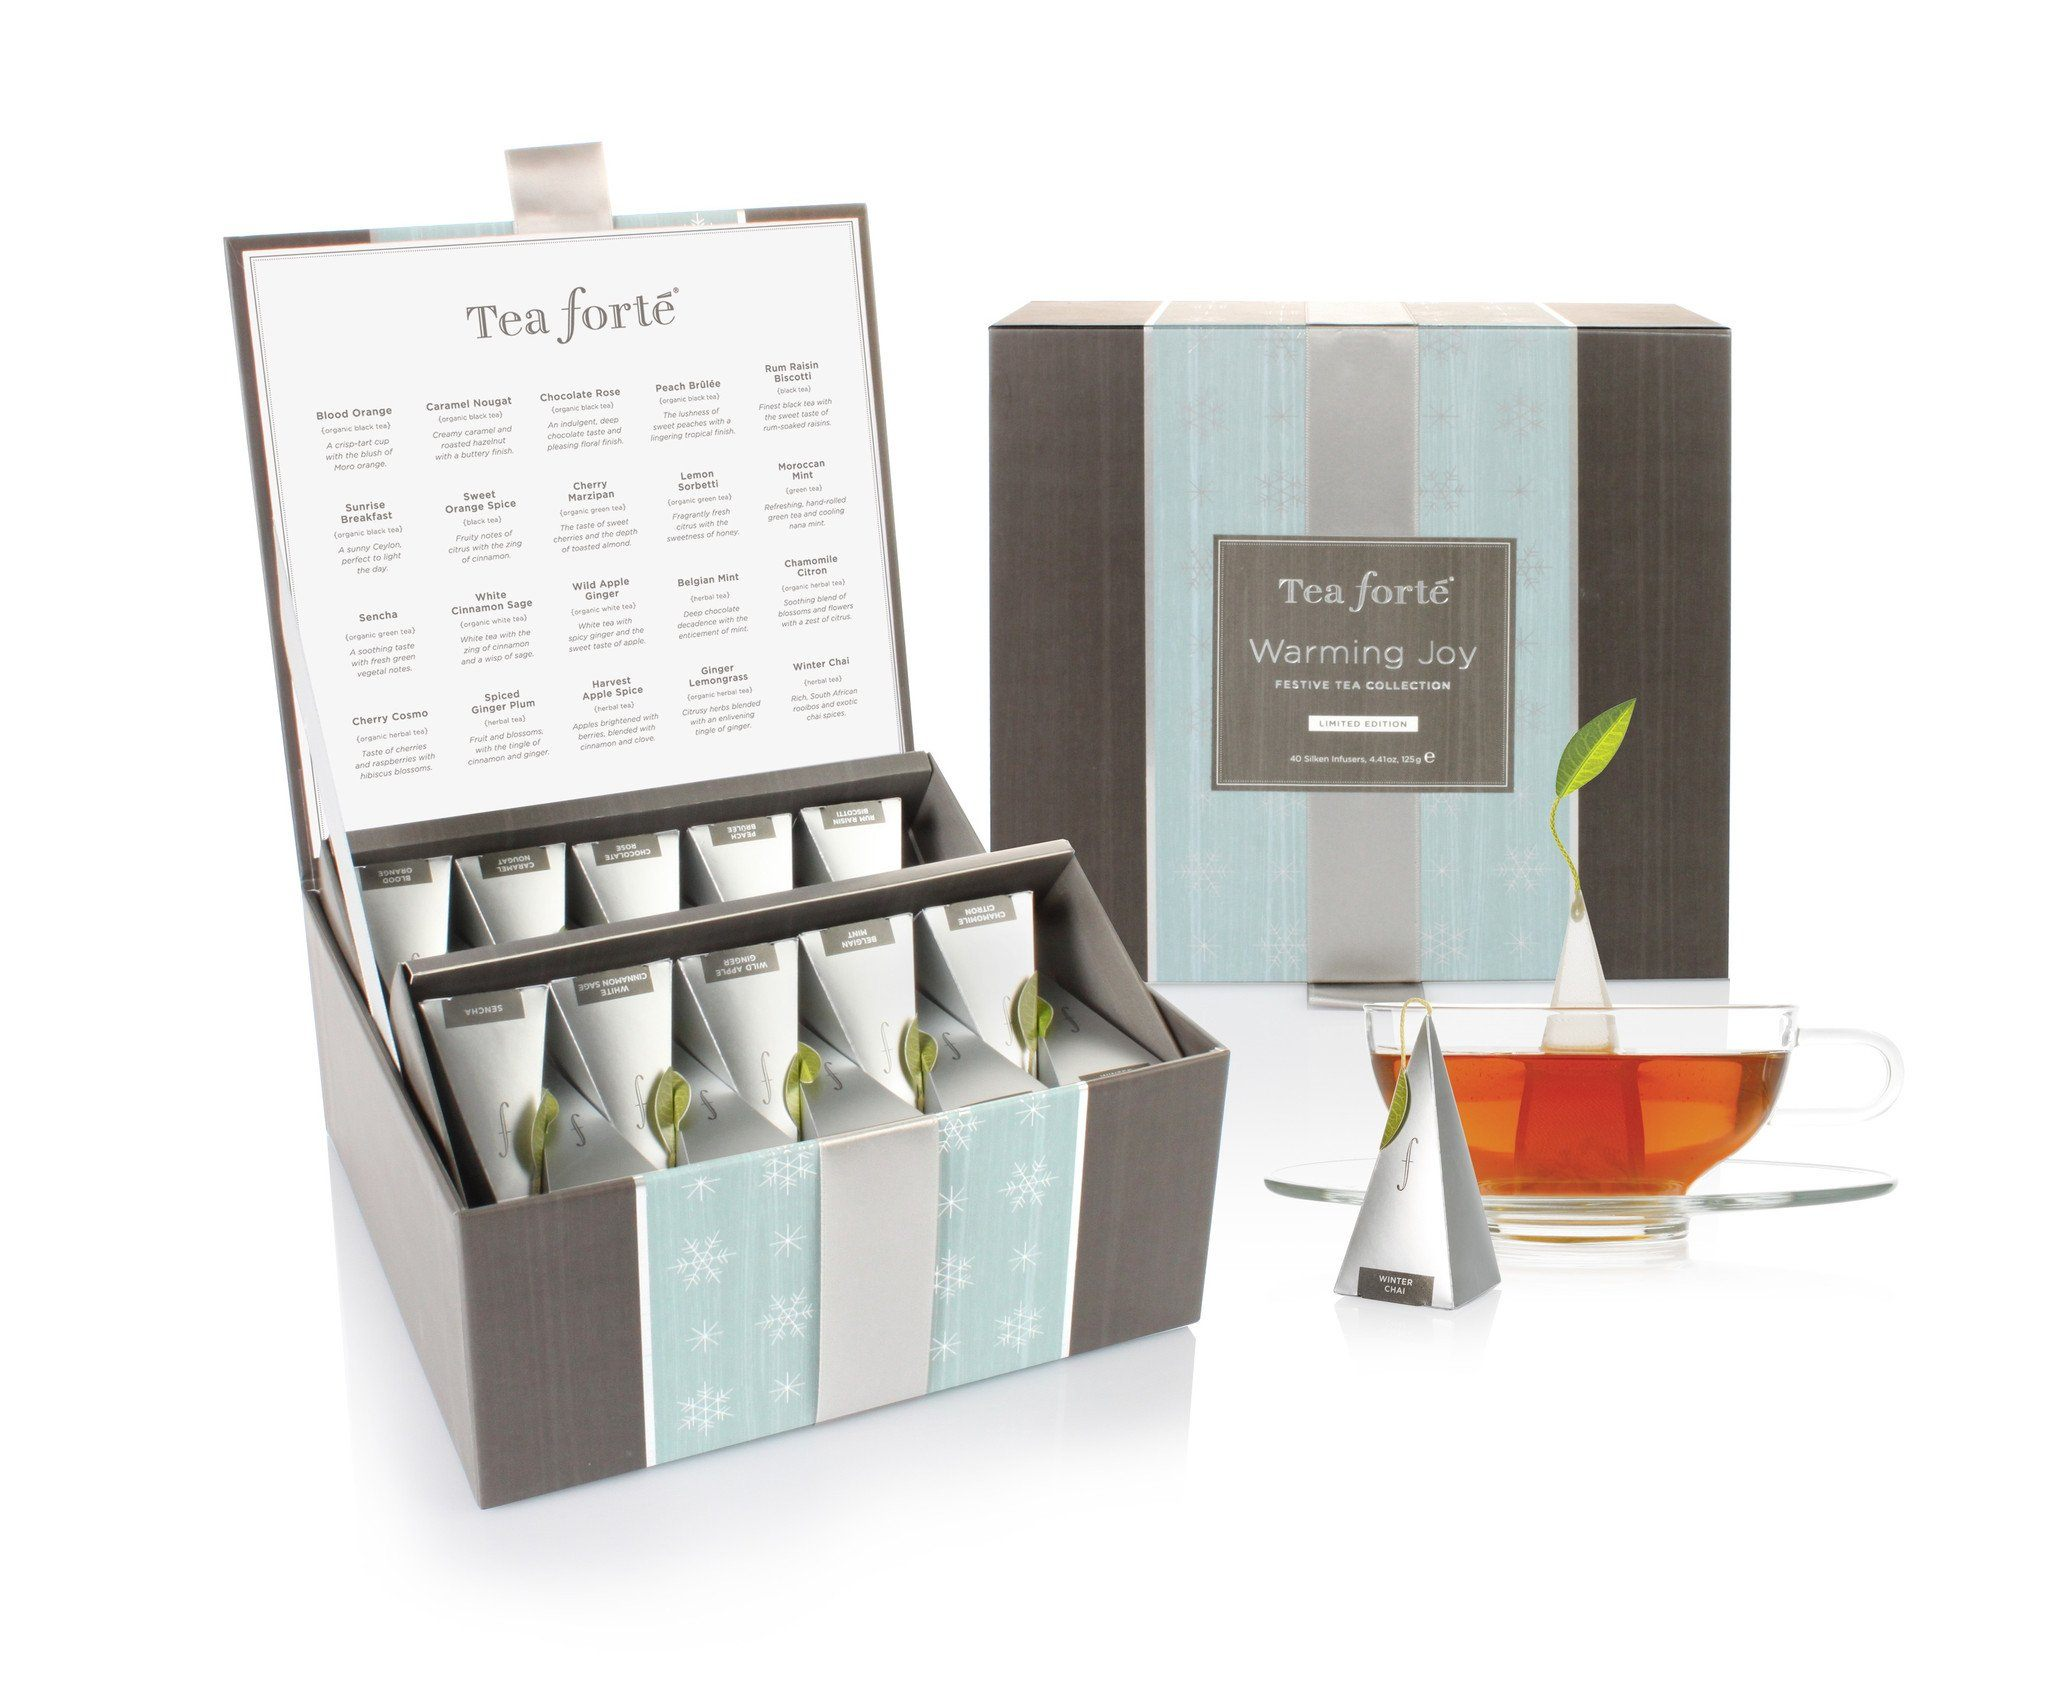 Warming Joy Festive Tea Chest